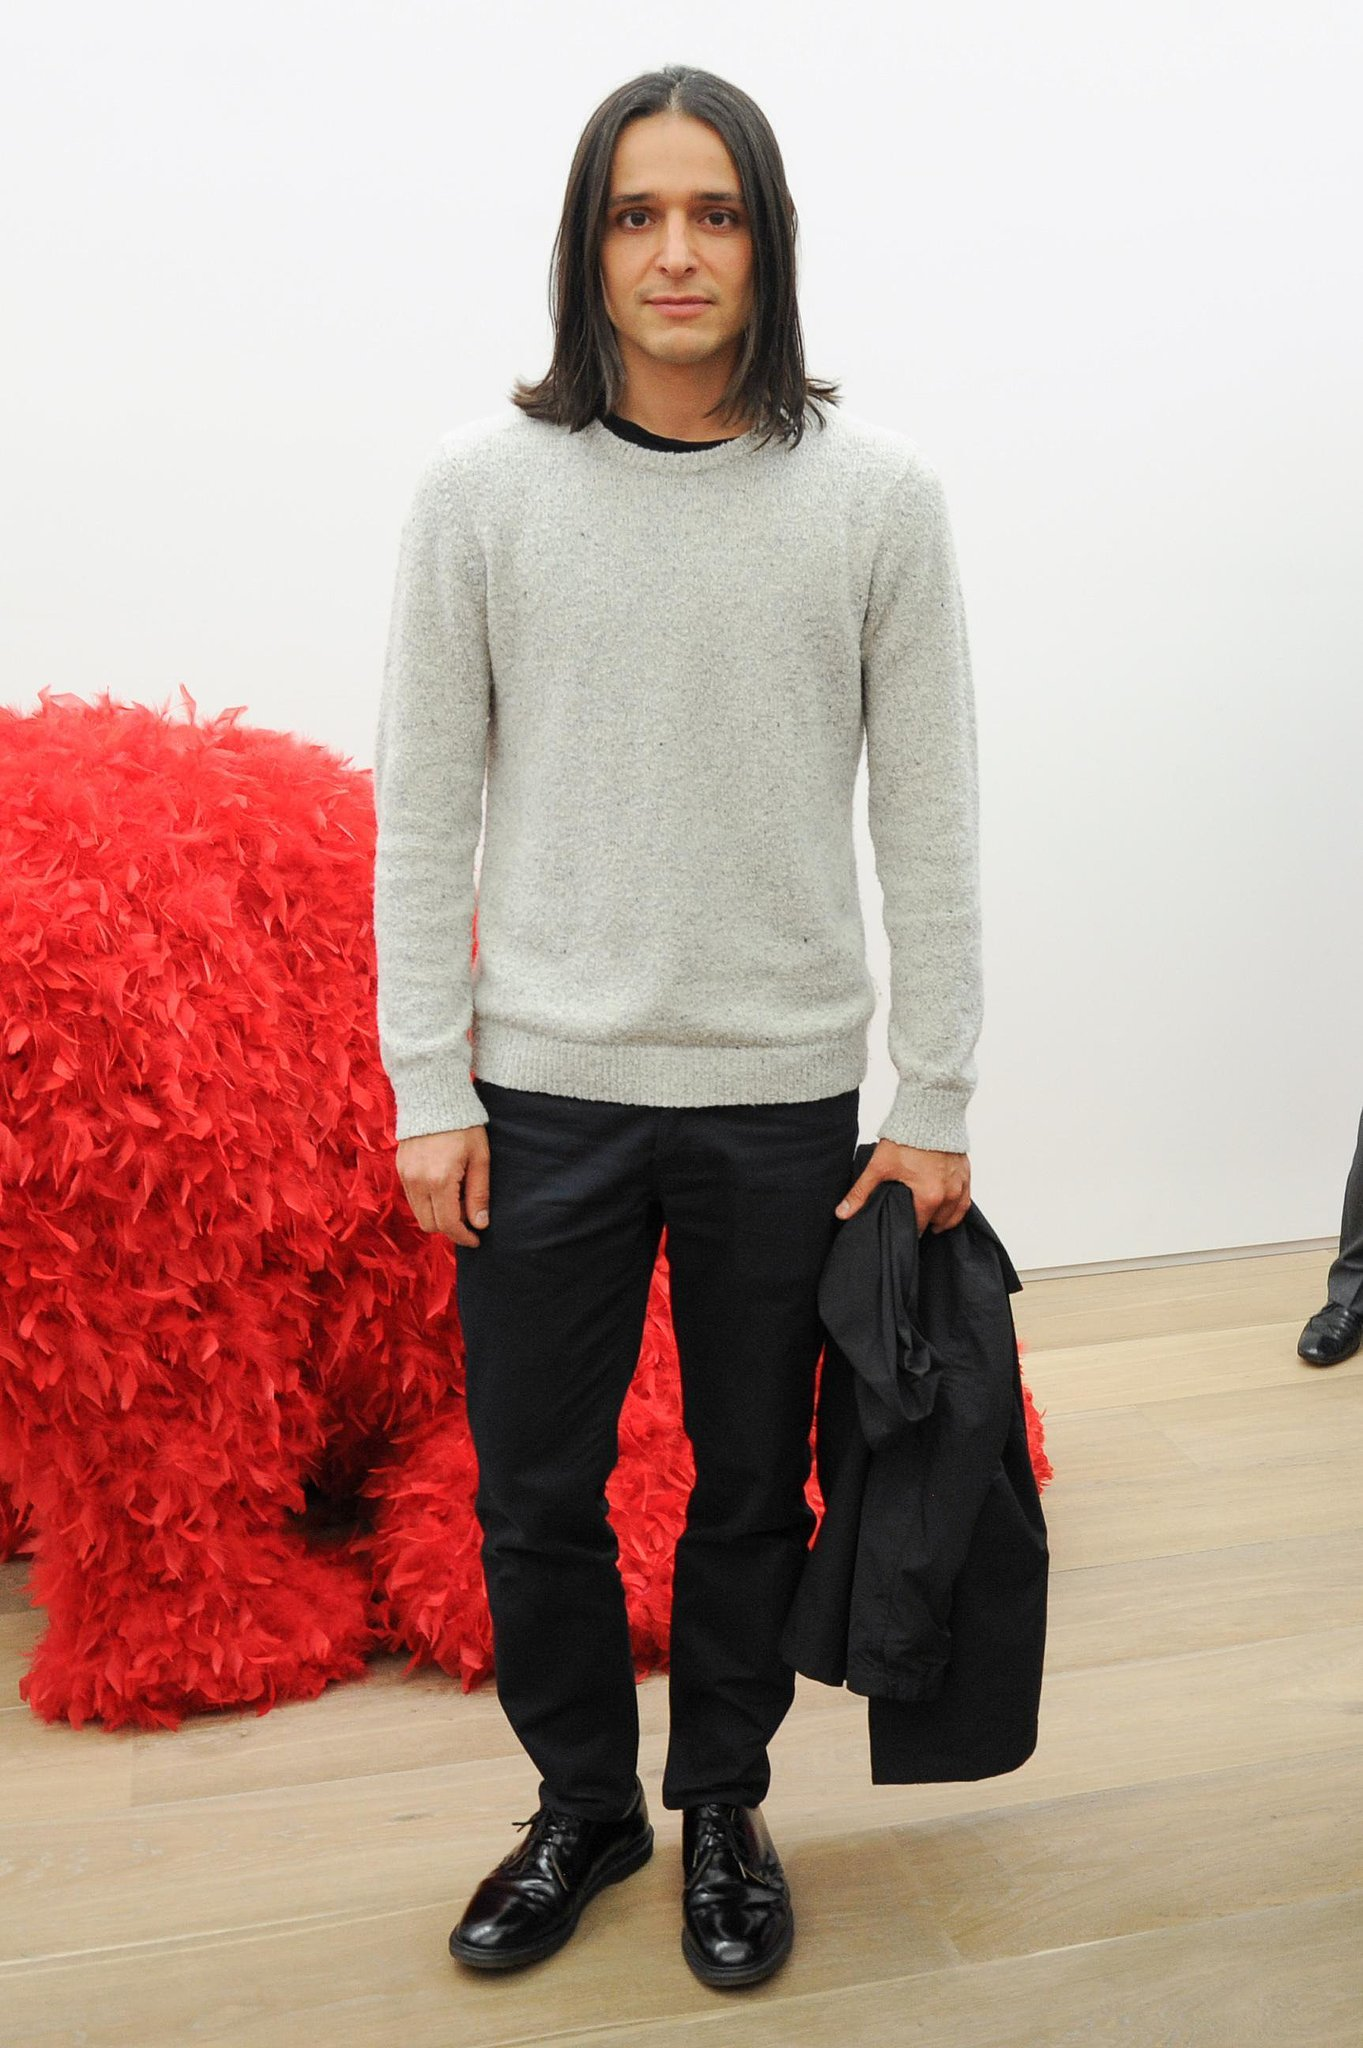 Olivier Theyskens was casual and cool in a dressed-down sweater at the Preview of Paola Pivi's Inaugural Exhibition.